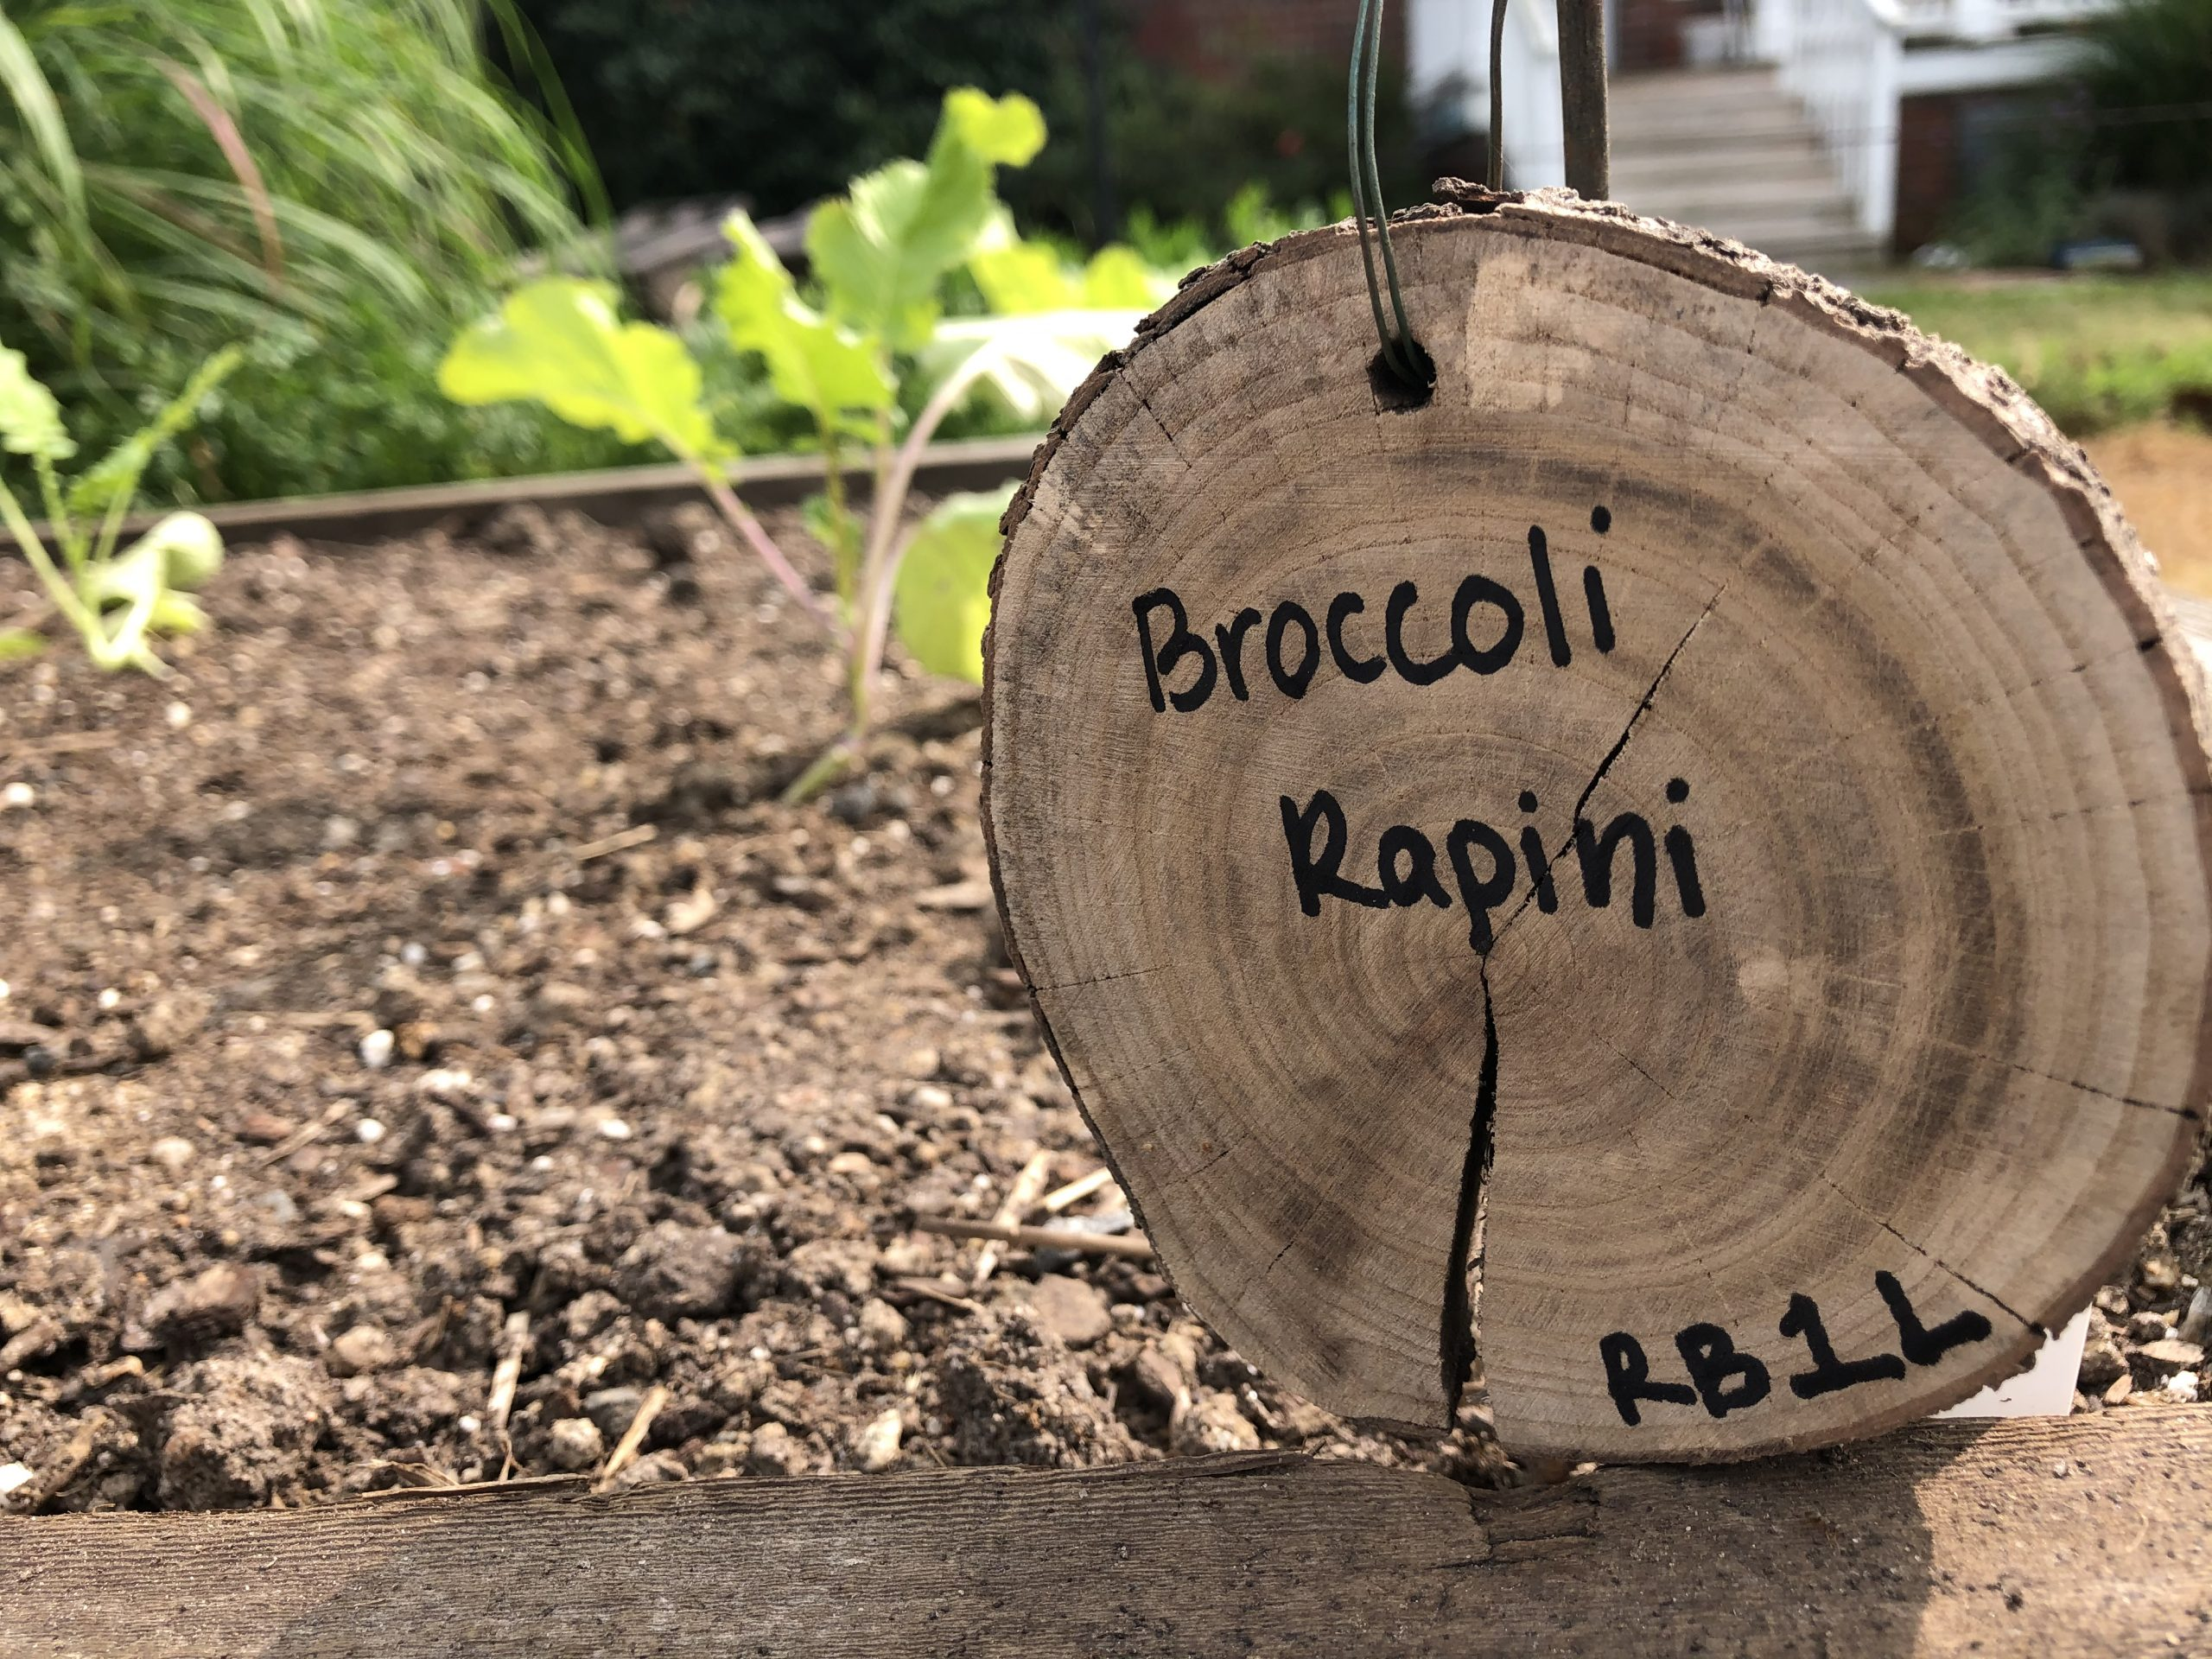 Sign showing broccoli growing in a garden